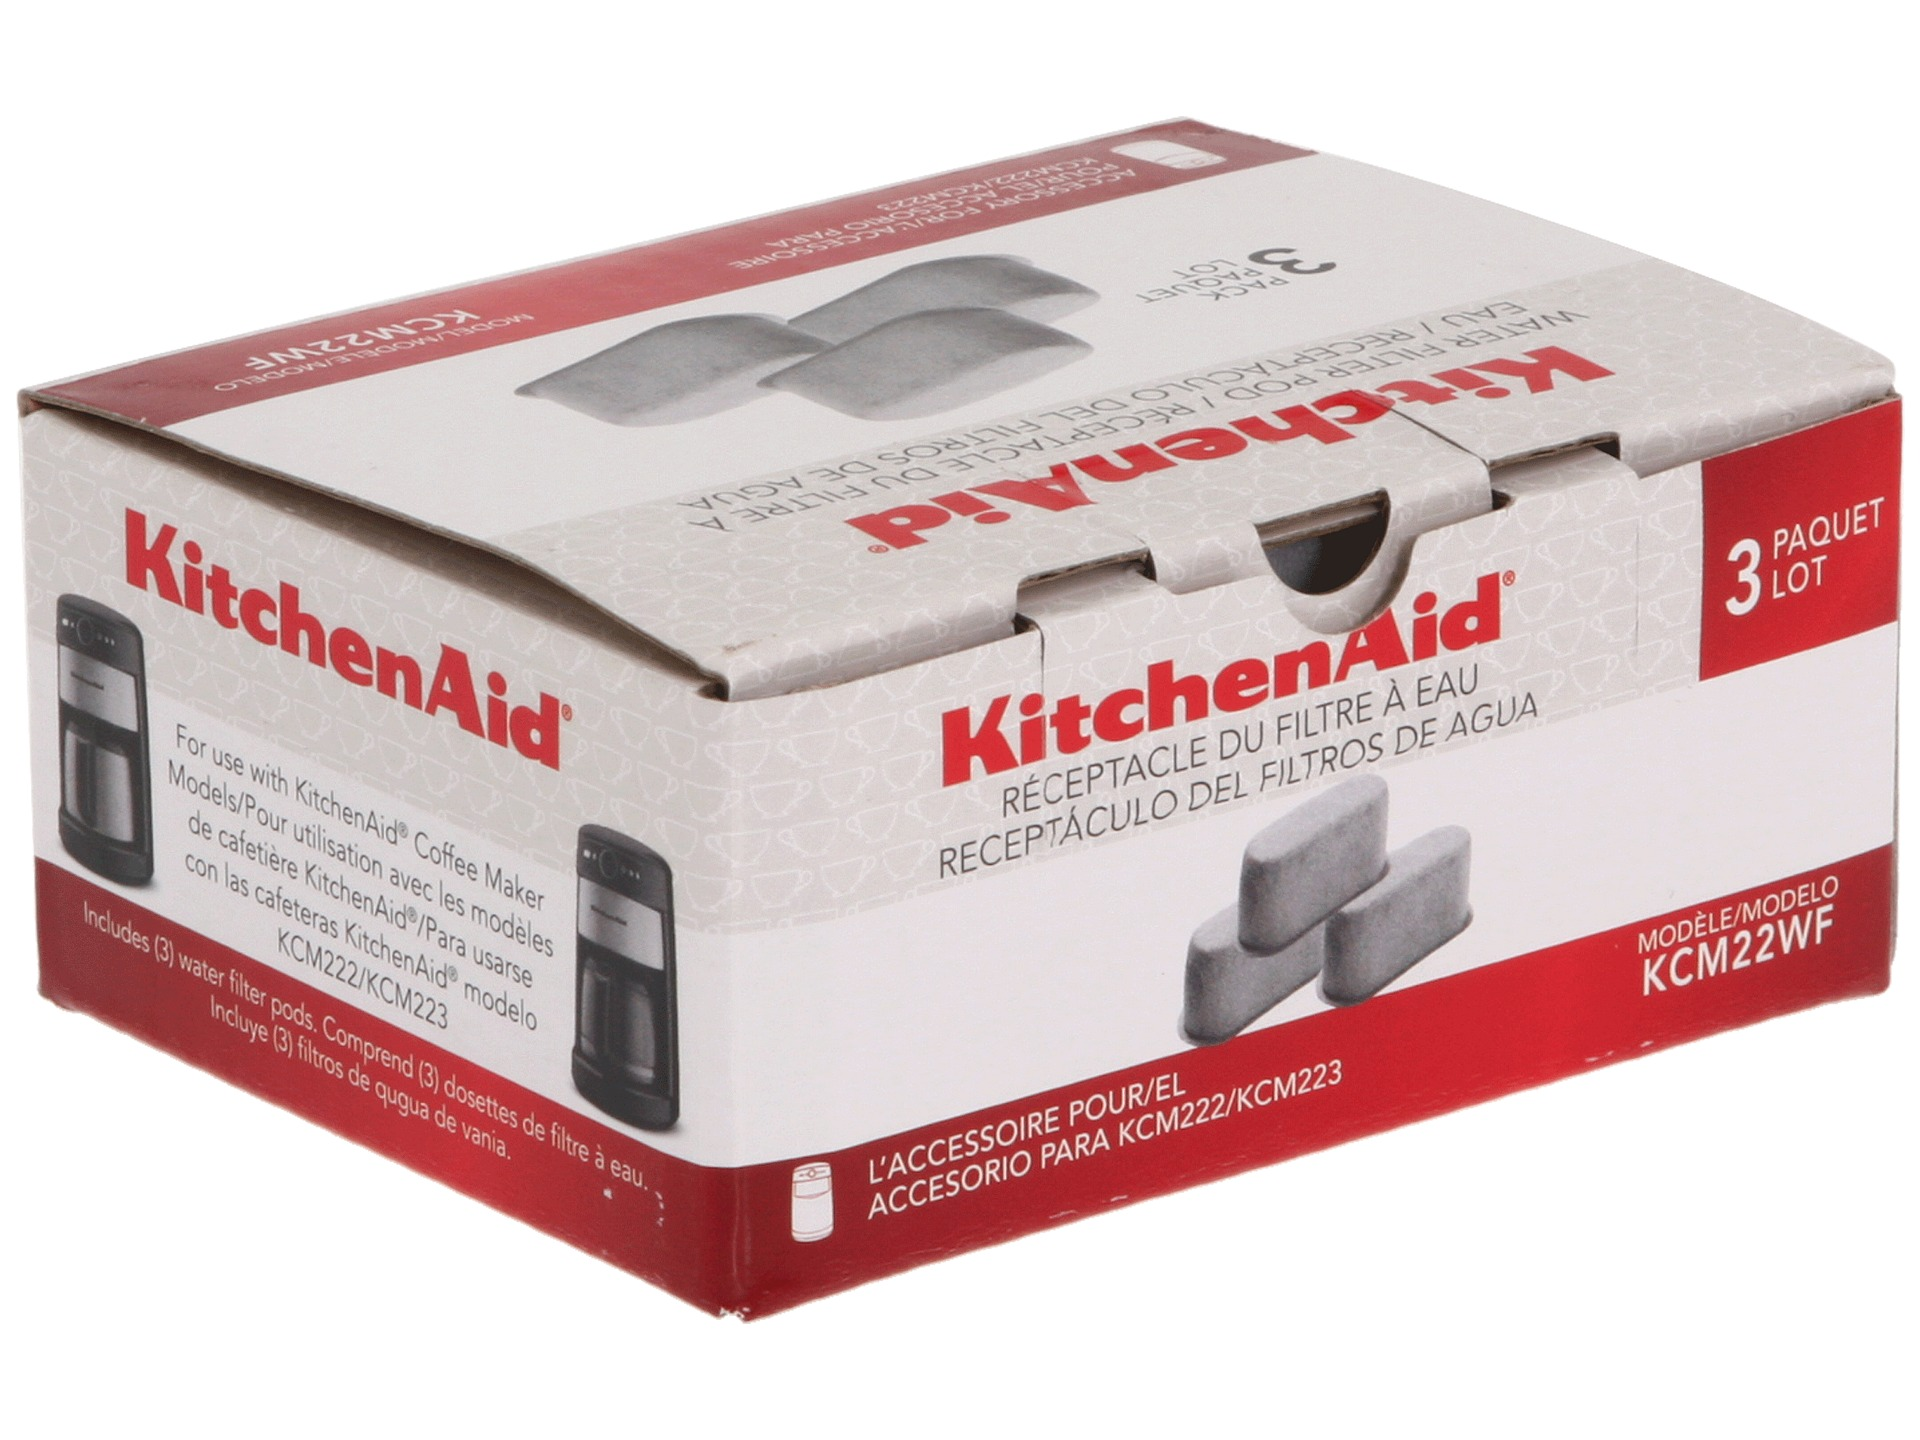 Kitchenaid Kcm22wf 3 Pack Water Filters Shipped Free at Zappos